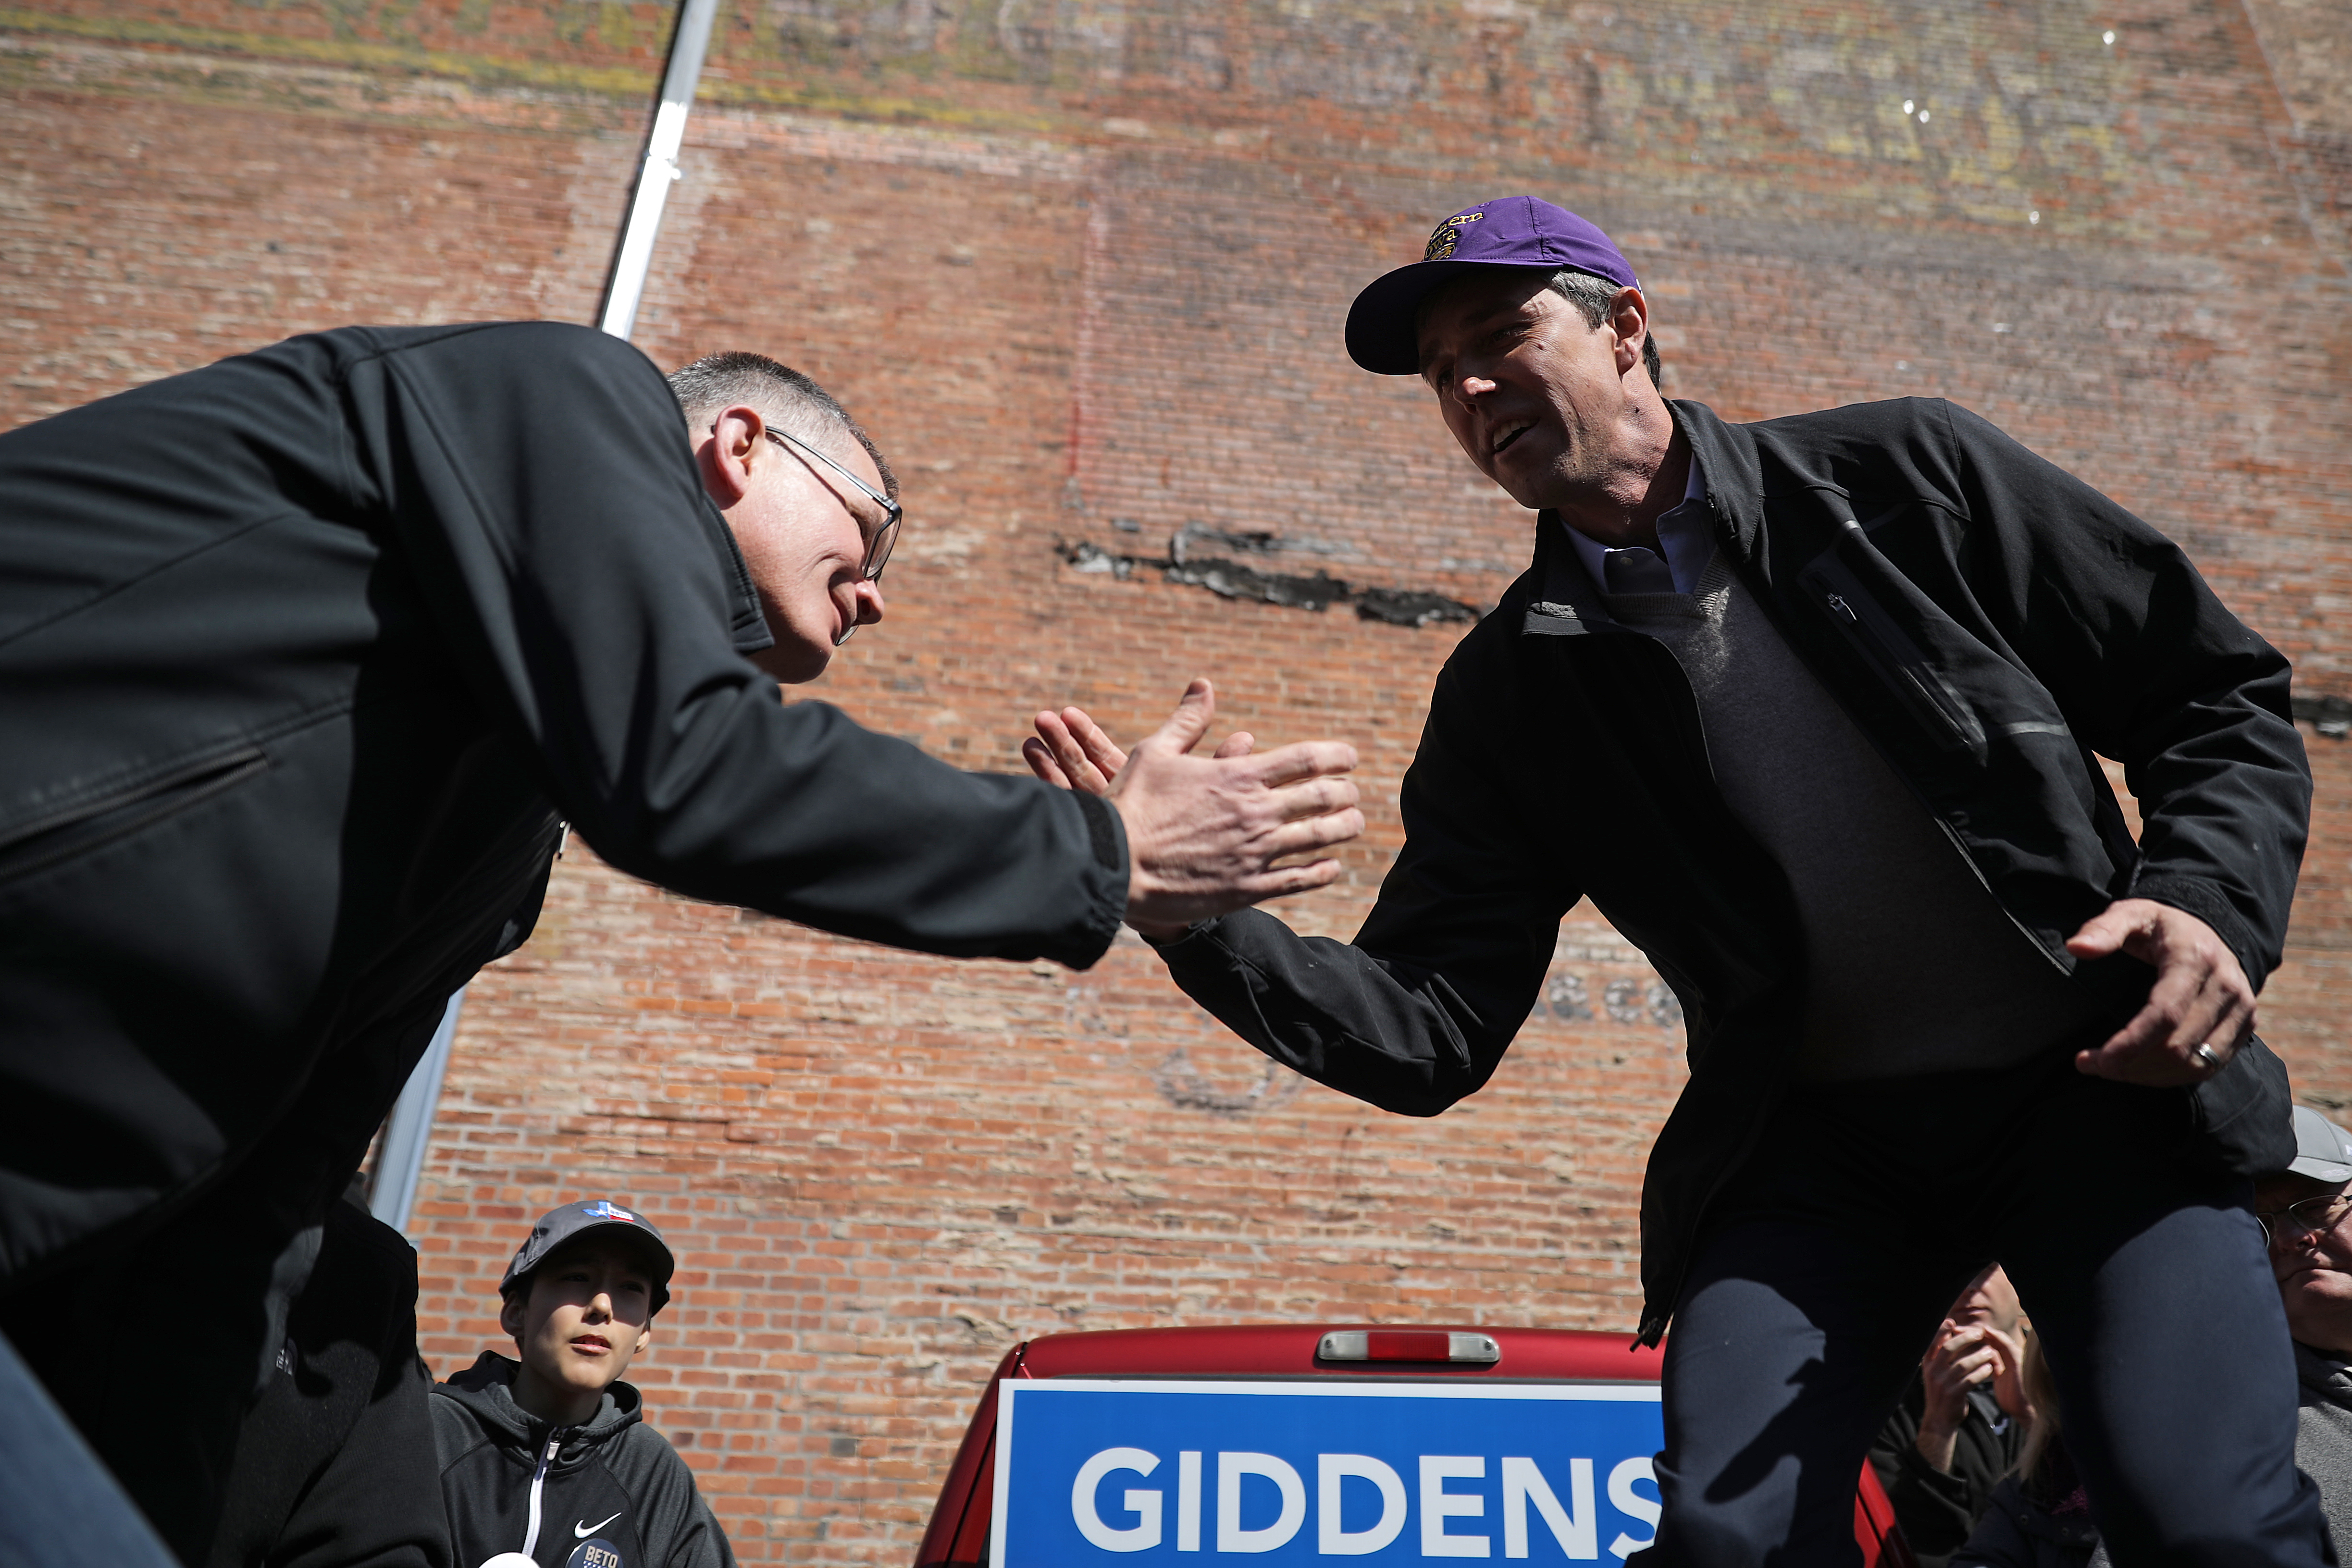 WATERLOO, IOWA - MARCH 16: Democratic presidential candidate Beto O'Rourke helps Iowa senate candidate Eric Giddens climb up into a pickup truck during a canvassing kickoff event March 16, 2019 in Waterloo, Iowa. After losing a long-shot race for U.S. Senate to Ted Cruz (R-TX), the 46-year-old O'Rourke is making his first campaign swing through Iowa after jumping into a crowded Democratic field this week. (Photo by Chip Somodevilla/Getty Images)